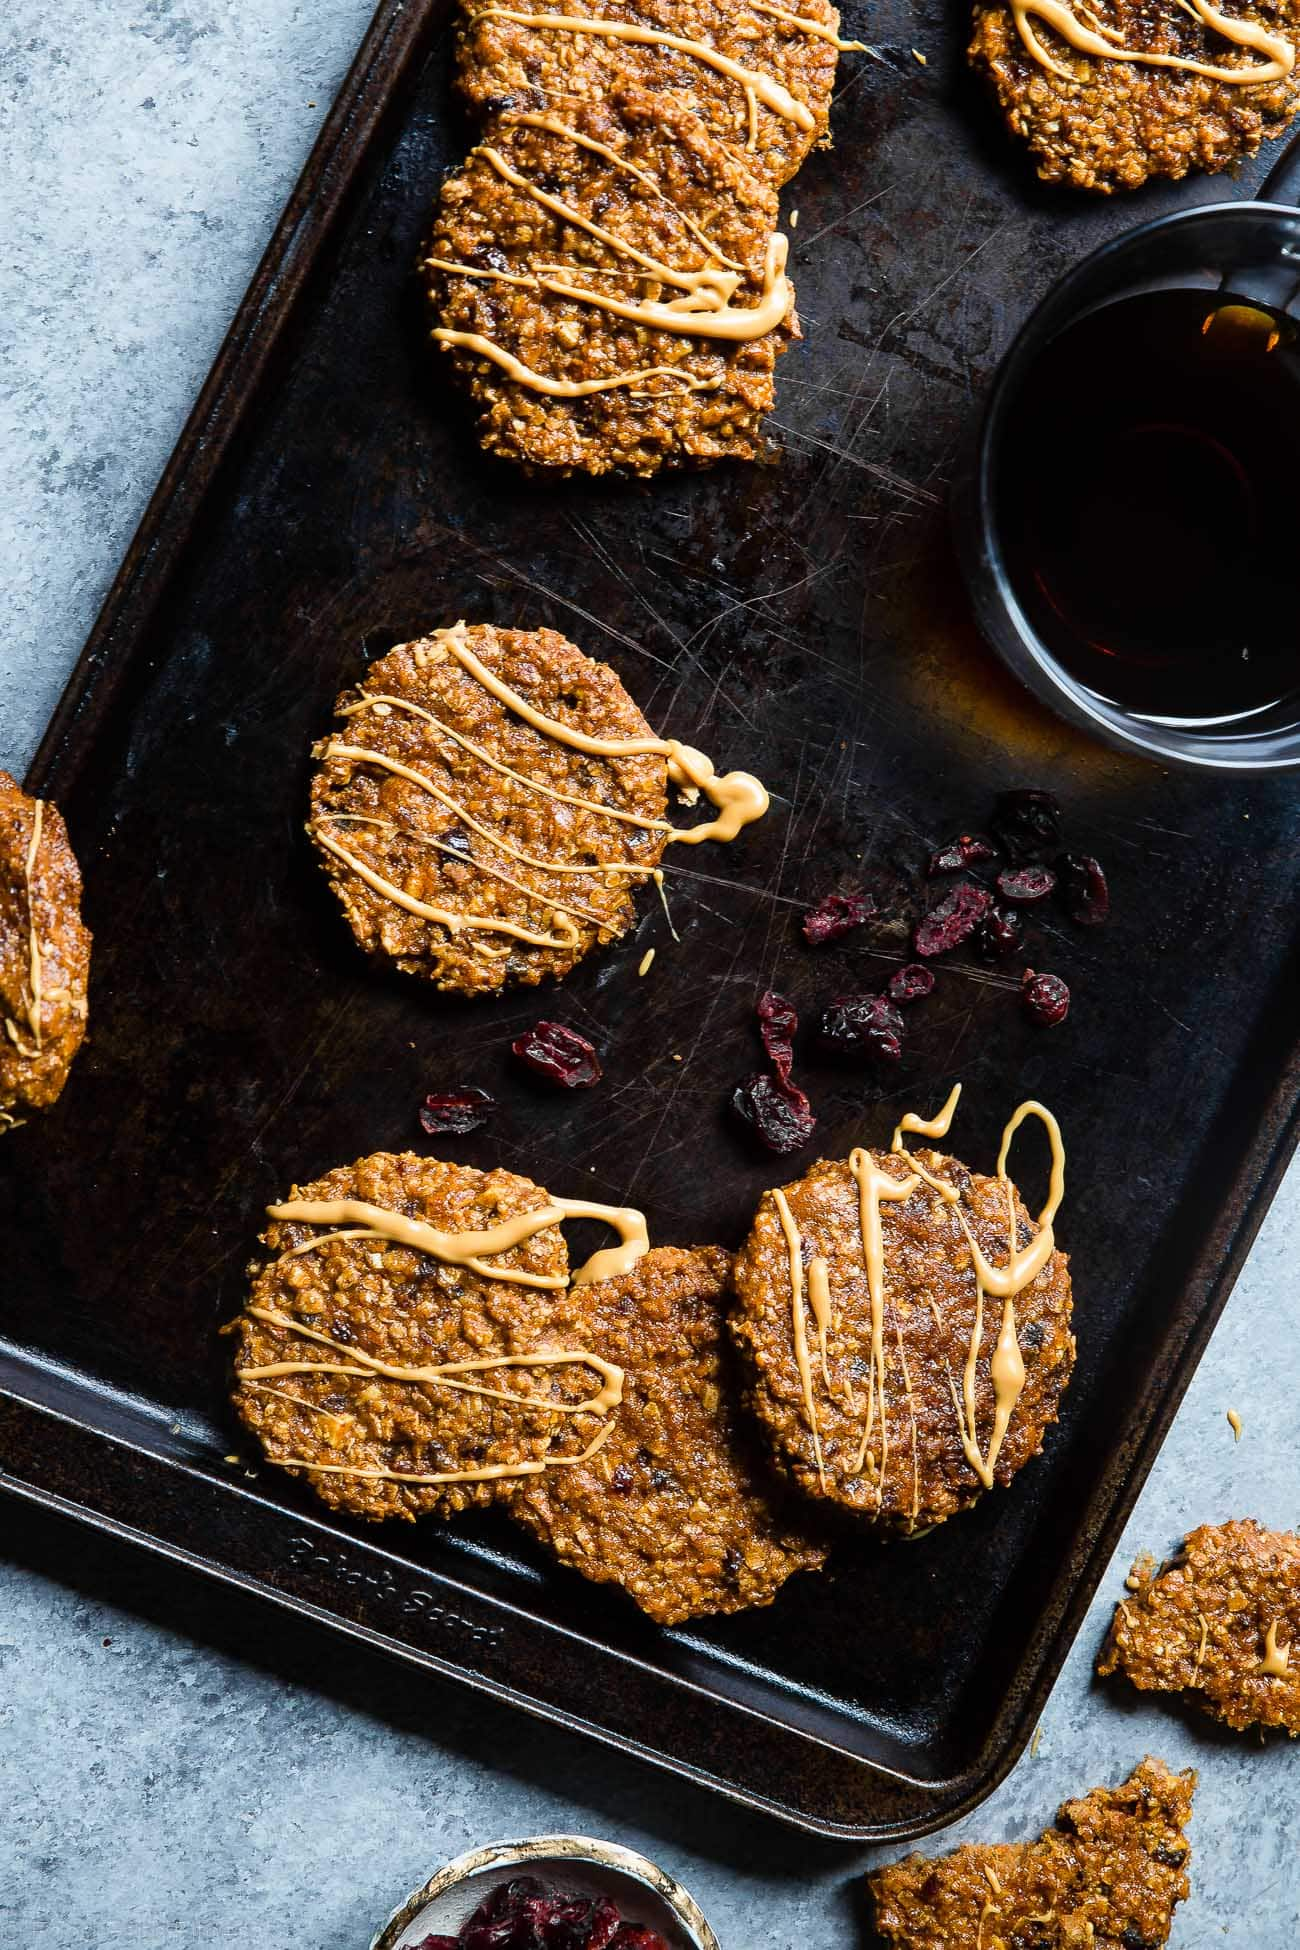 Vegan Almond Cranberry Oatmeal Breakfast Cookies - Made extra nourishing with sweet potato and almond butter! An easy, healthy and dairy/gluten free breakfast for on the go! | Foodfaithfitness.com | @FoodFaithFit